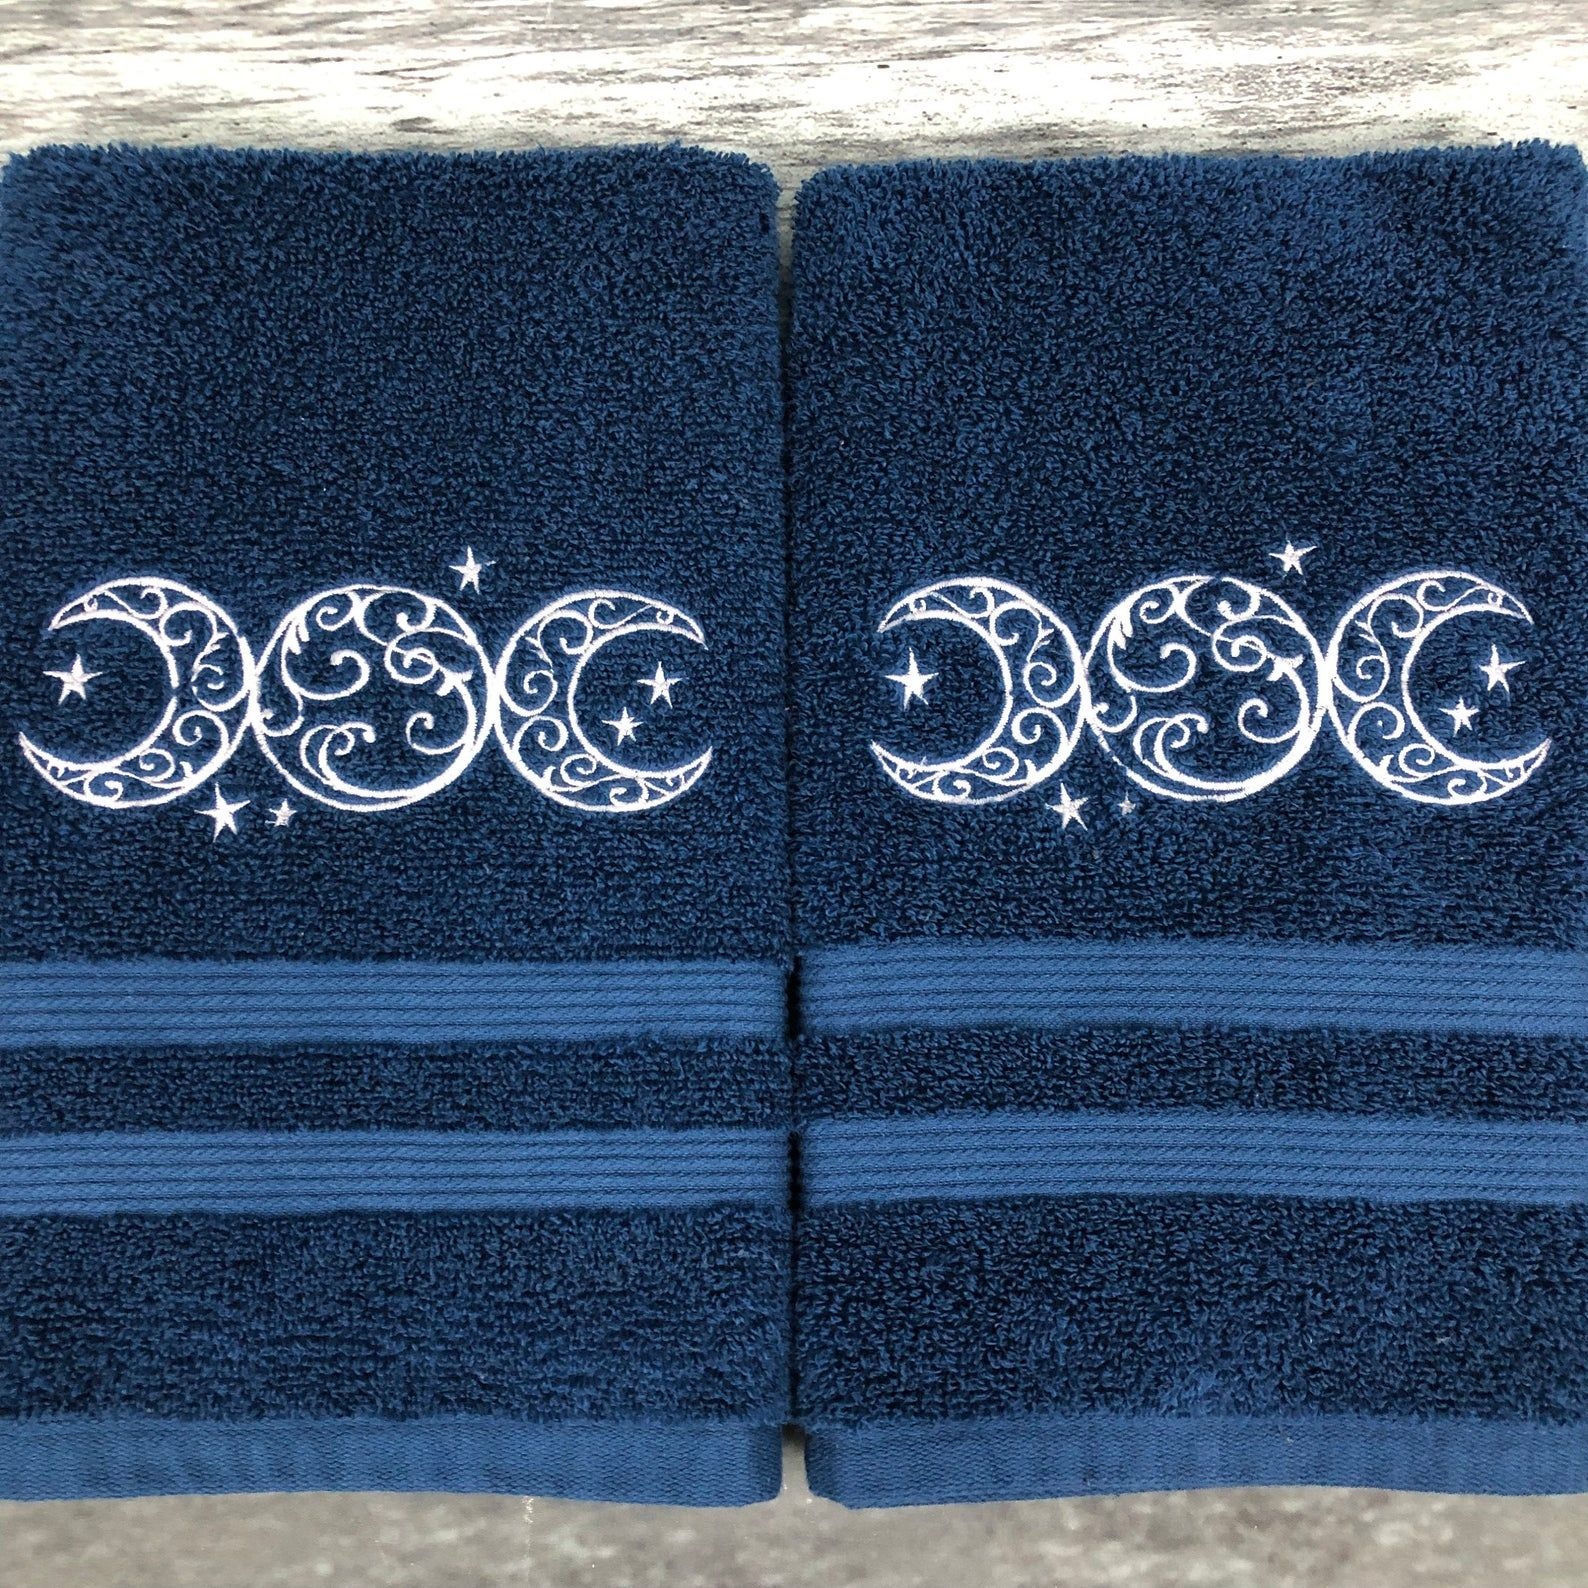 Triple moon hand towel set, Wiccan decor, witchy decor, embroidered towels, celestial decor, pagan, Mother's Day